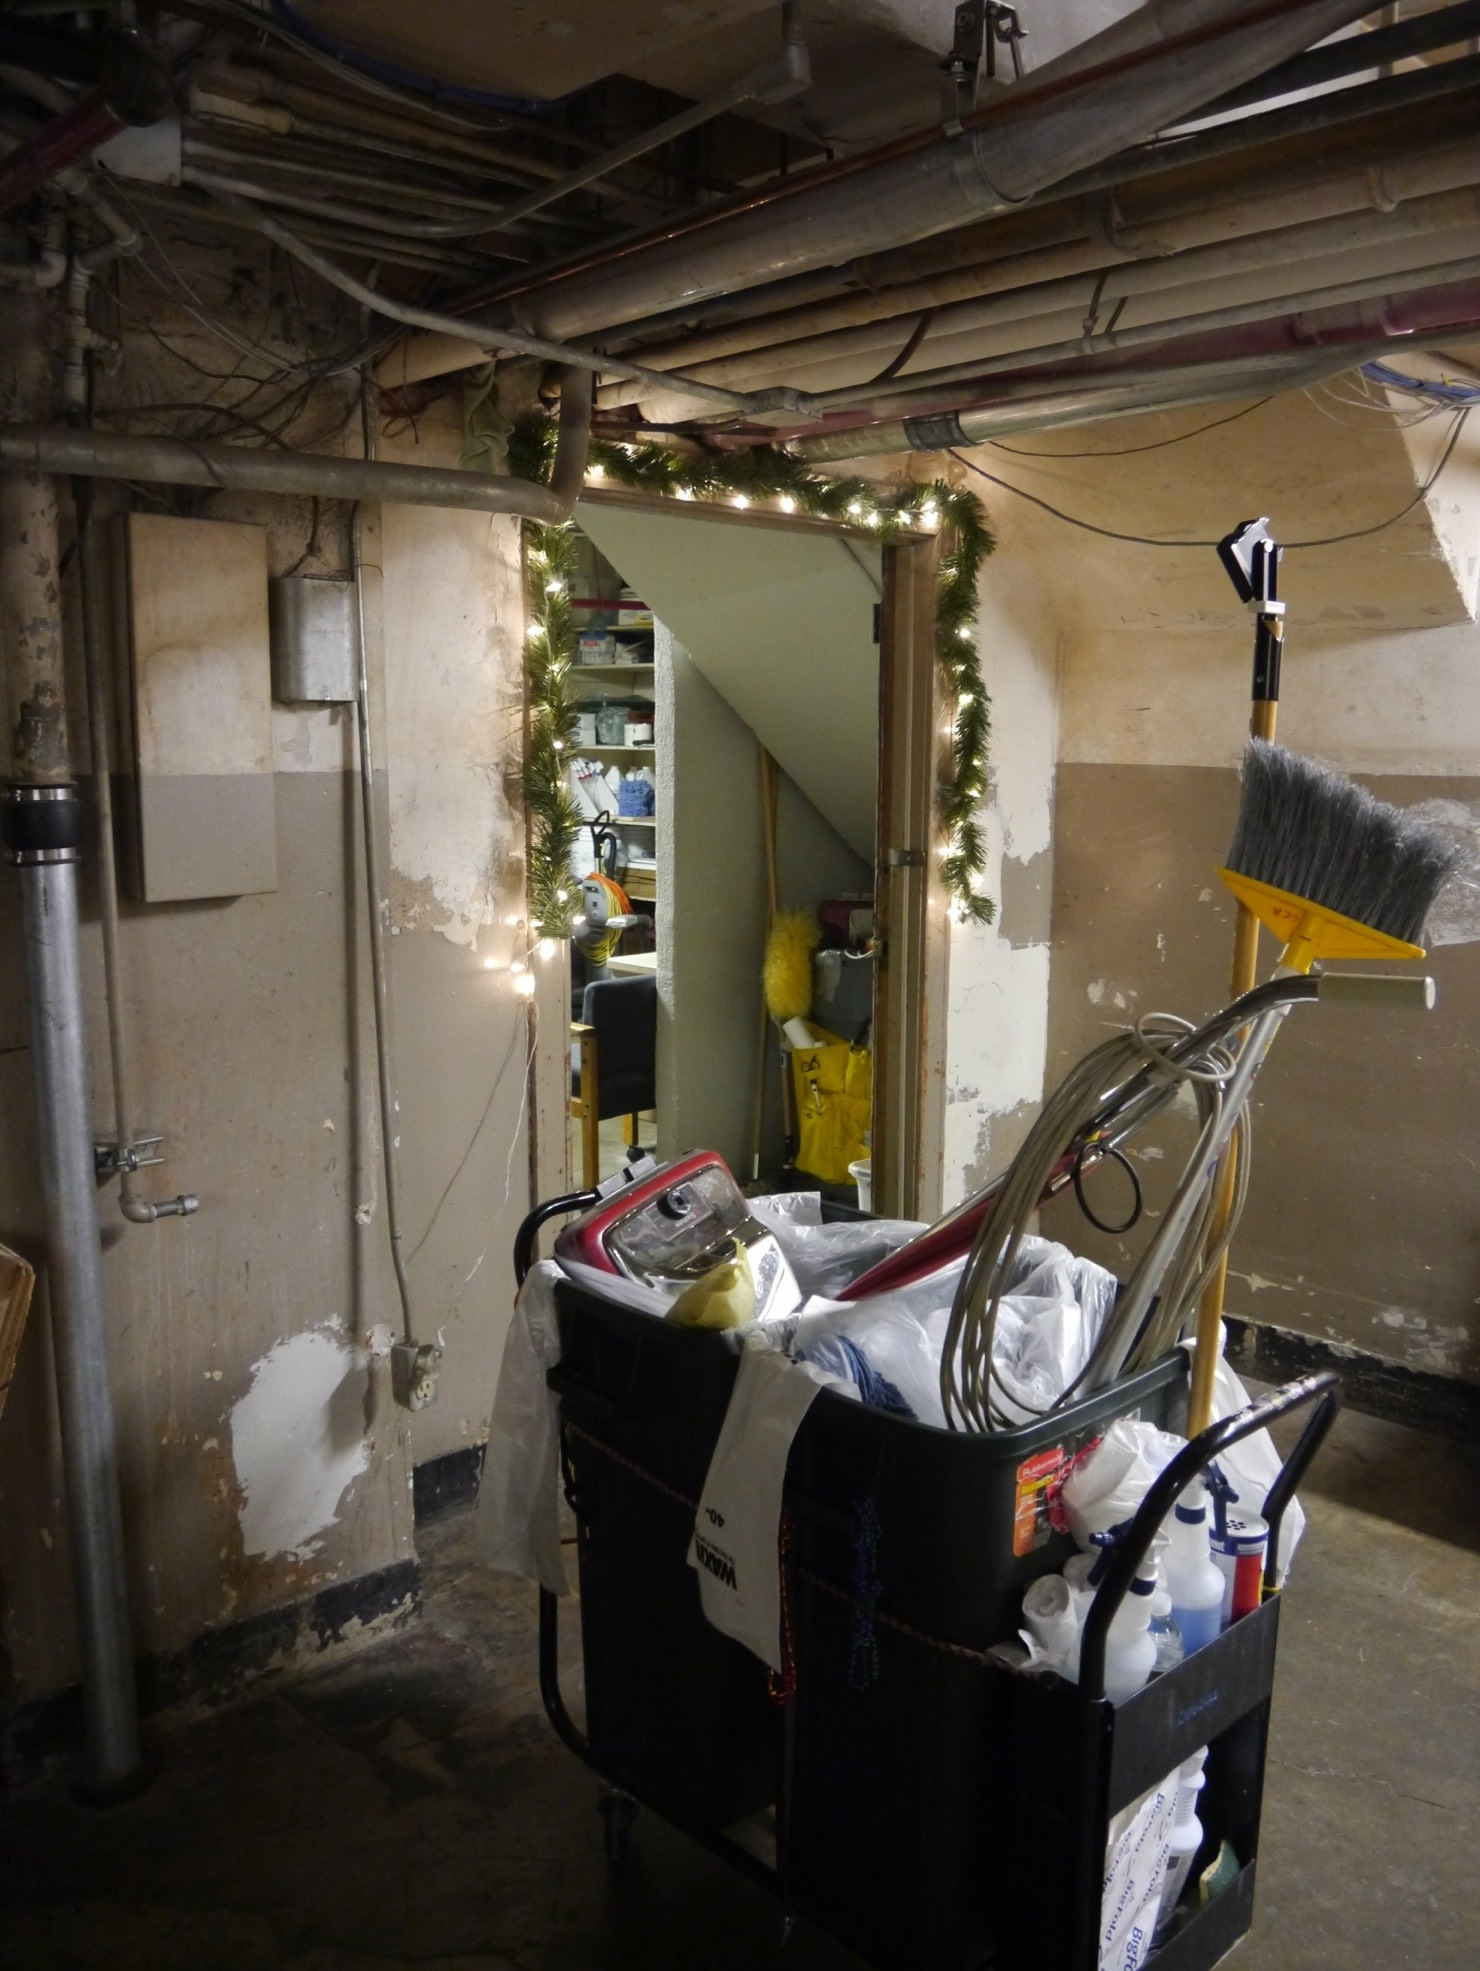 Nature Janitorial Closet Pictures Ideas Janitor. Found In The Basement Of A  Major Internet Hub Messy Nessy Chic